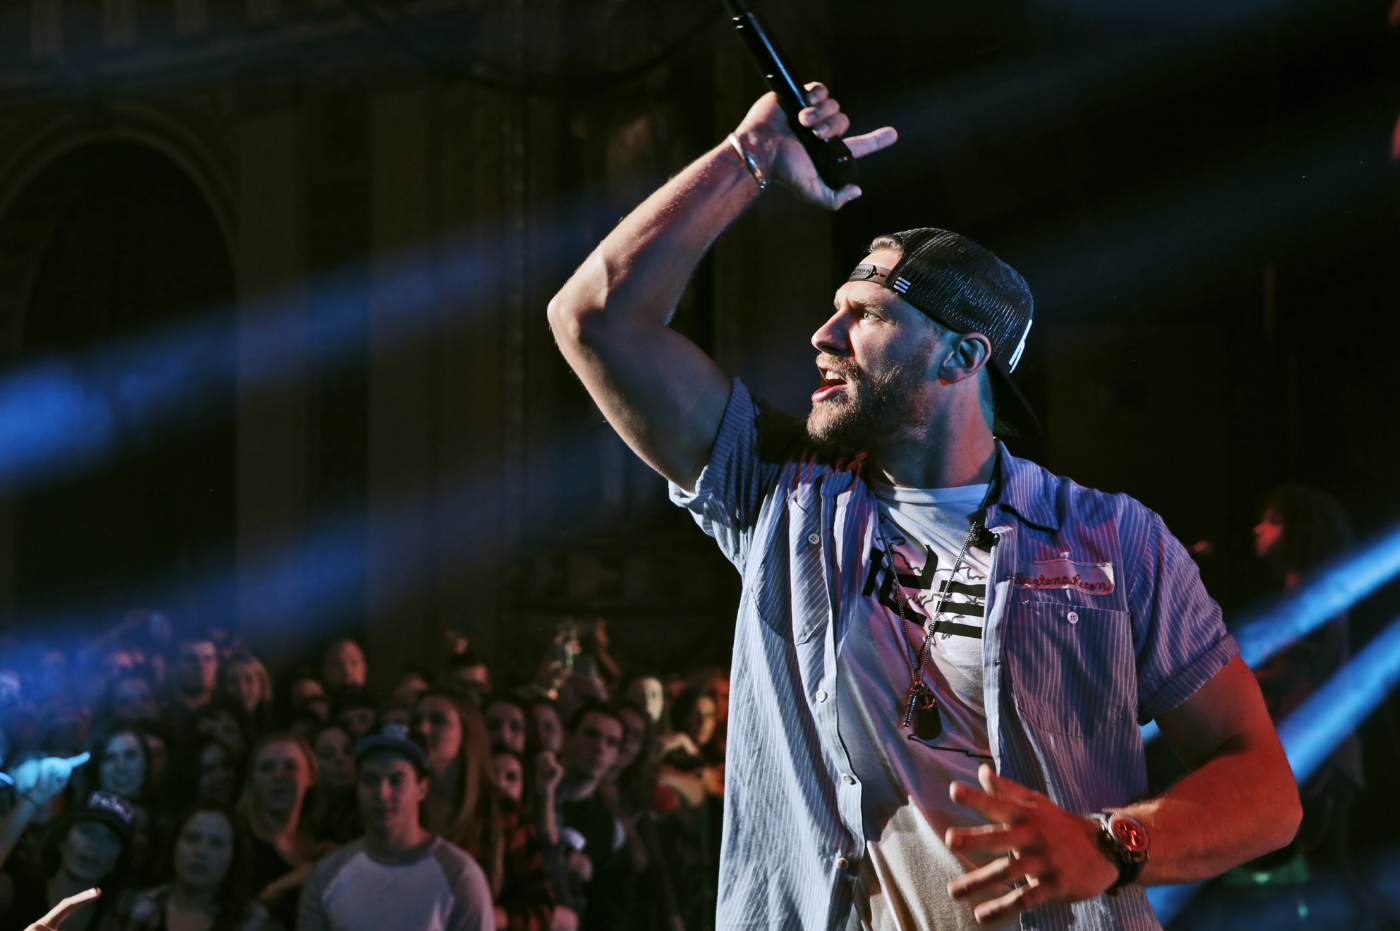 Chase Rice at The Wiltern